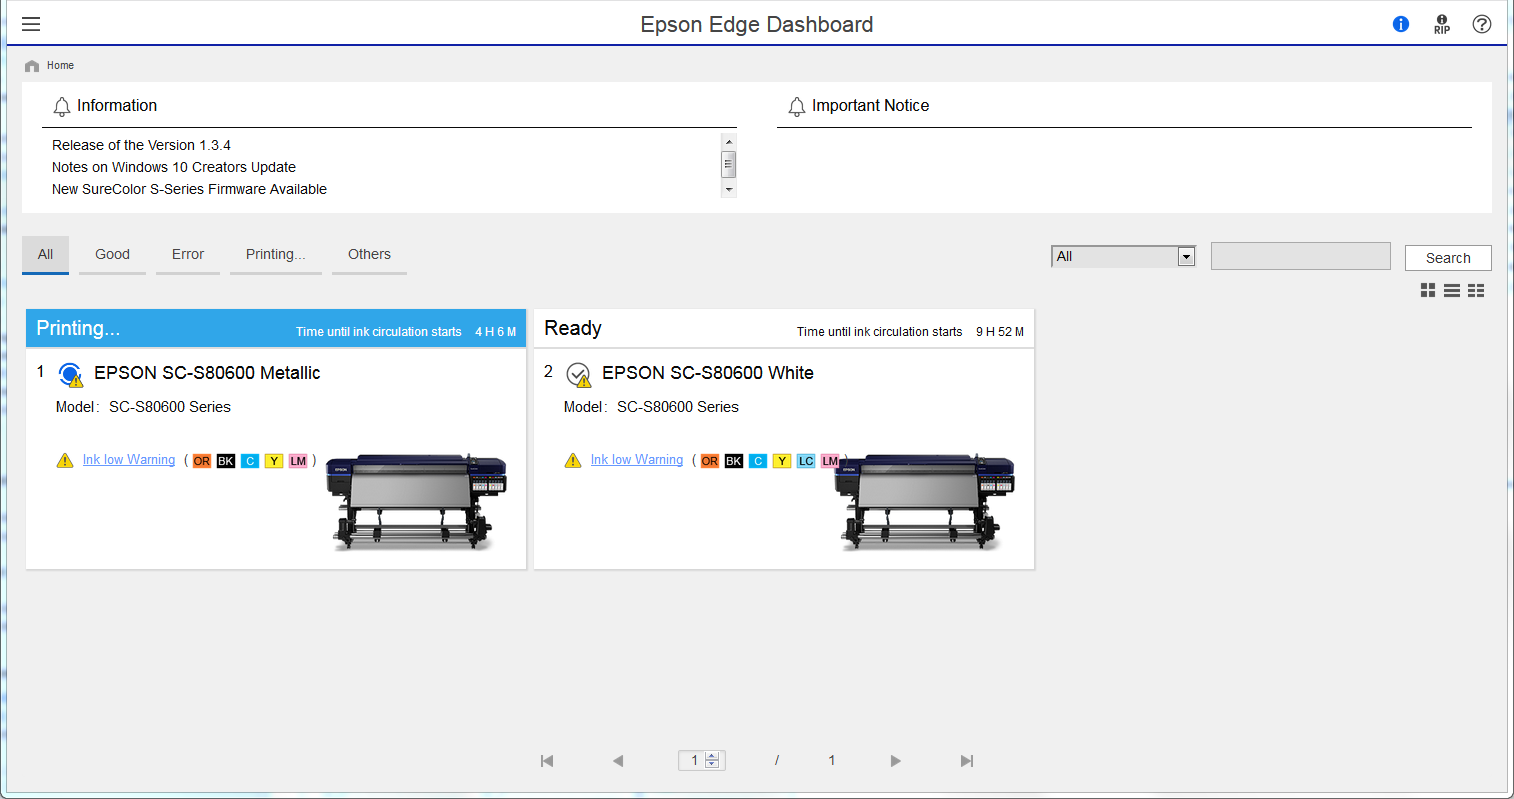 KB208221744: Pack Proof - How to generate EPL files for the Epson SC